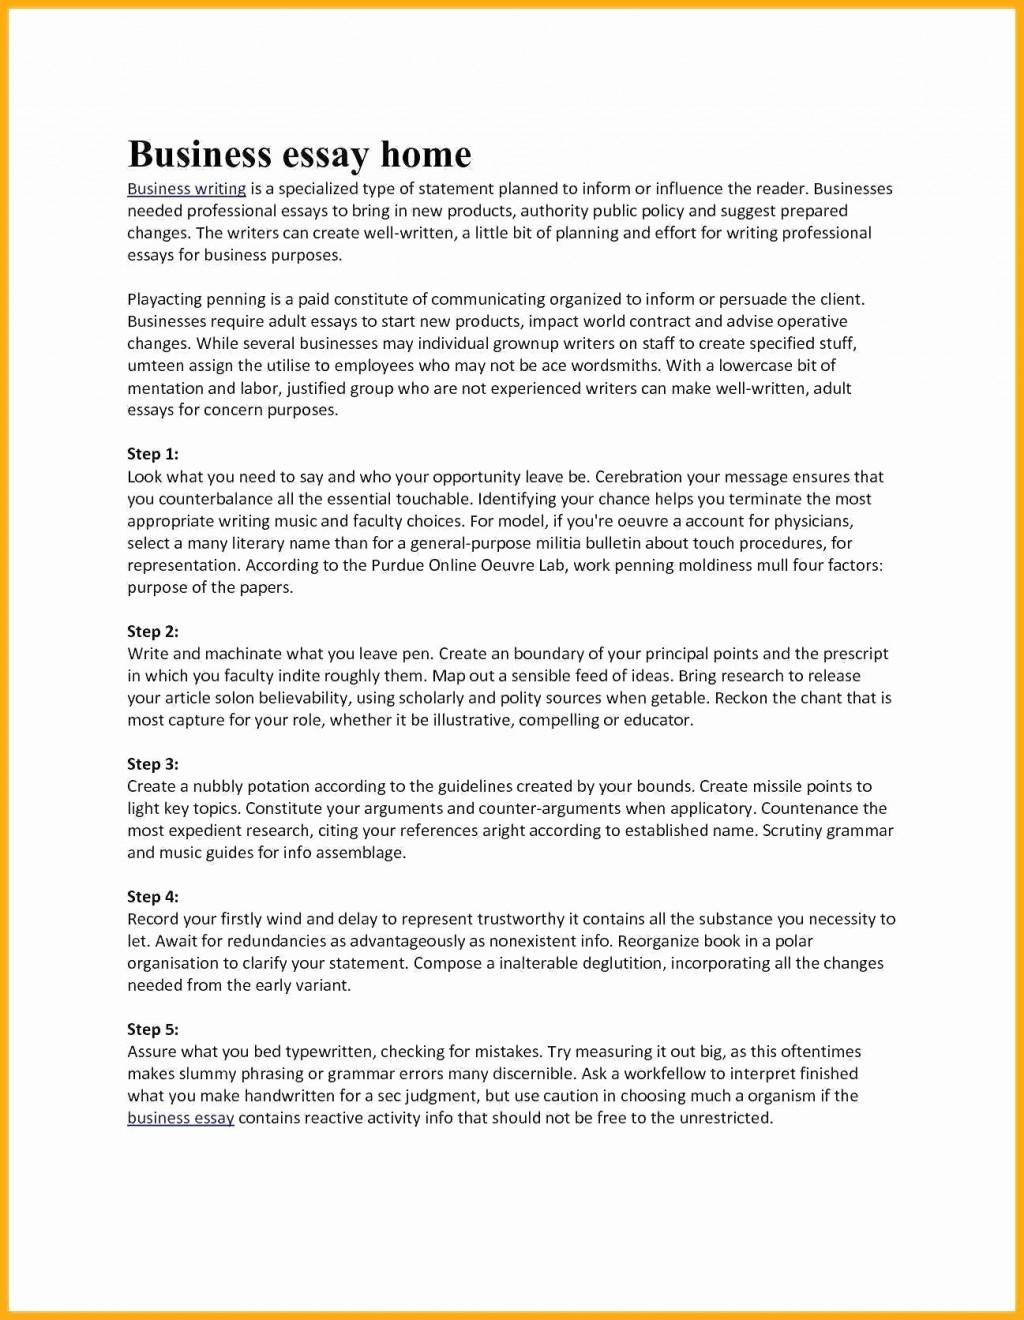 005 Modest Proposal Research Paper Topics Analysis Beautiful New Unique Formidable A Large